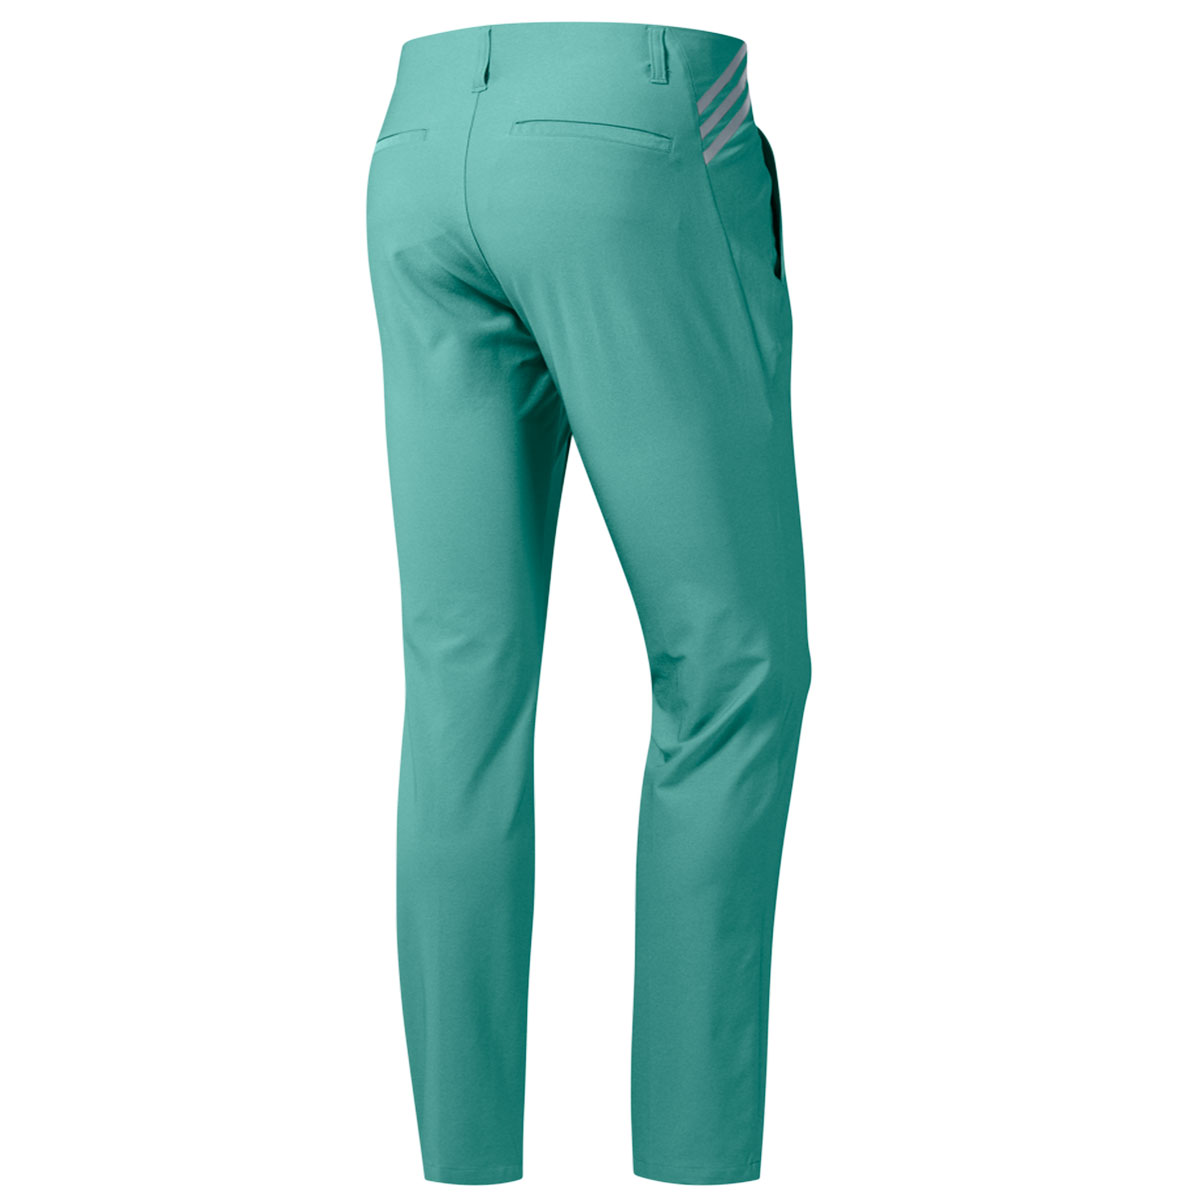 adidas-Golf-Mens-2019-Ultimate365-3-Stripes-Tapered-Water-Resistant-Trousers thumbnail 5